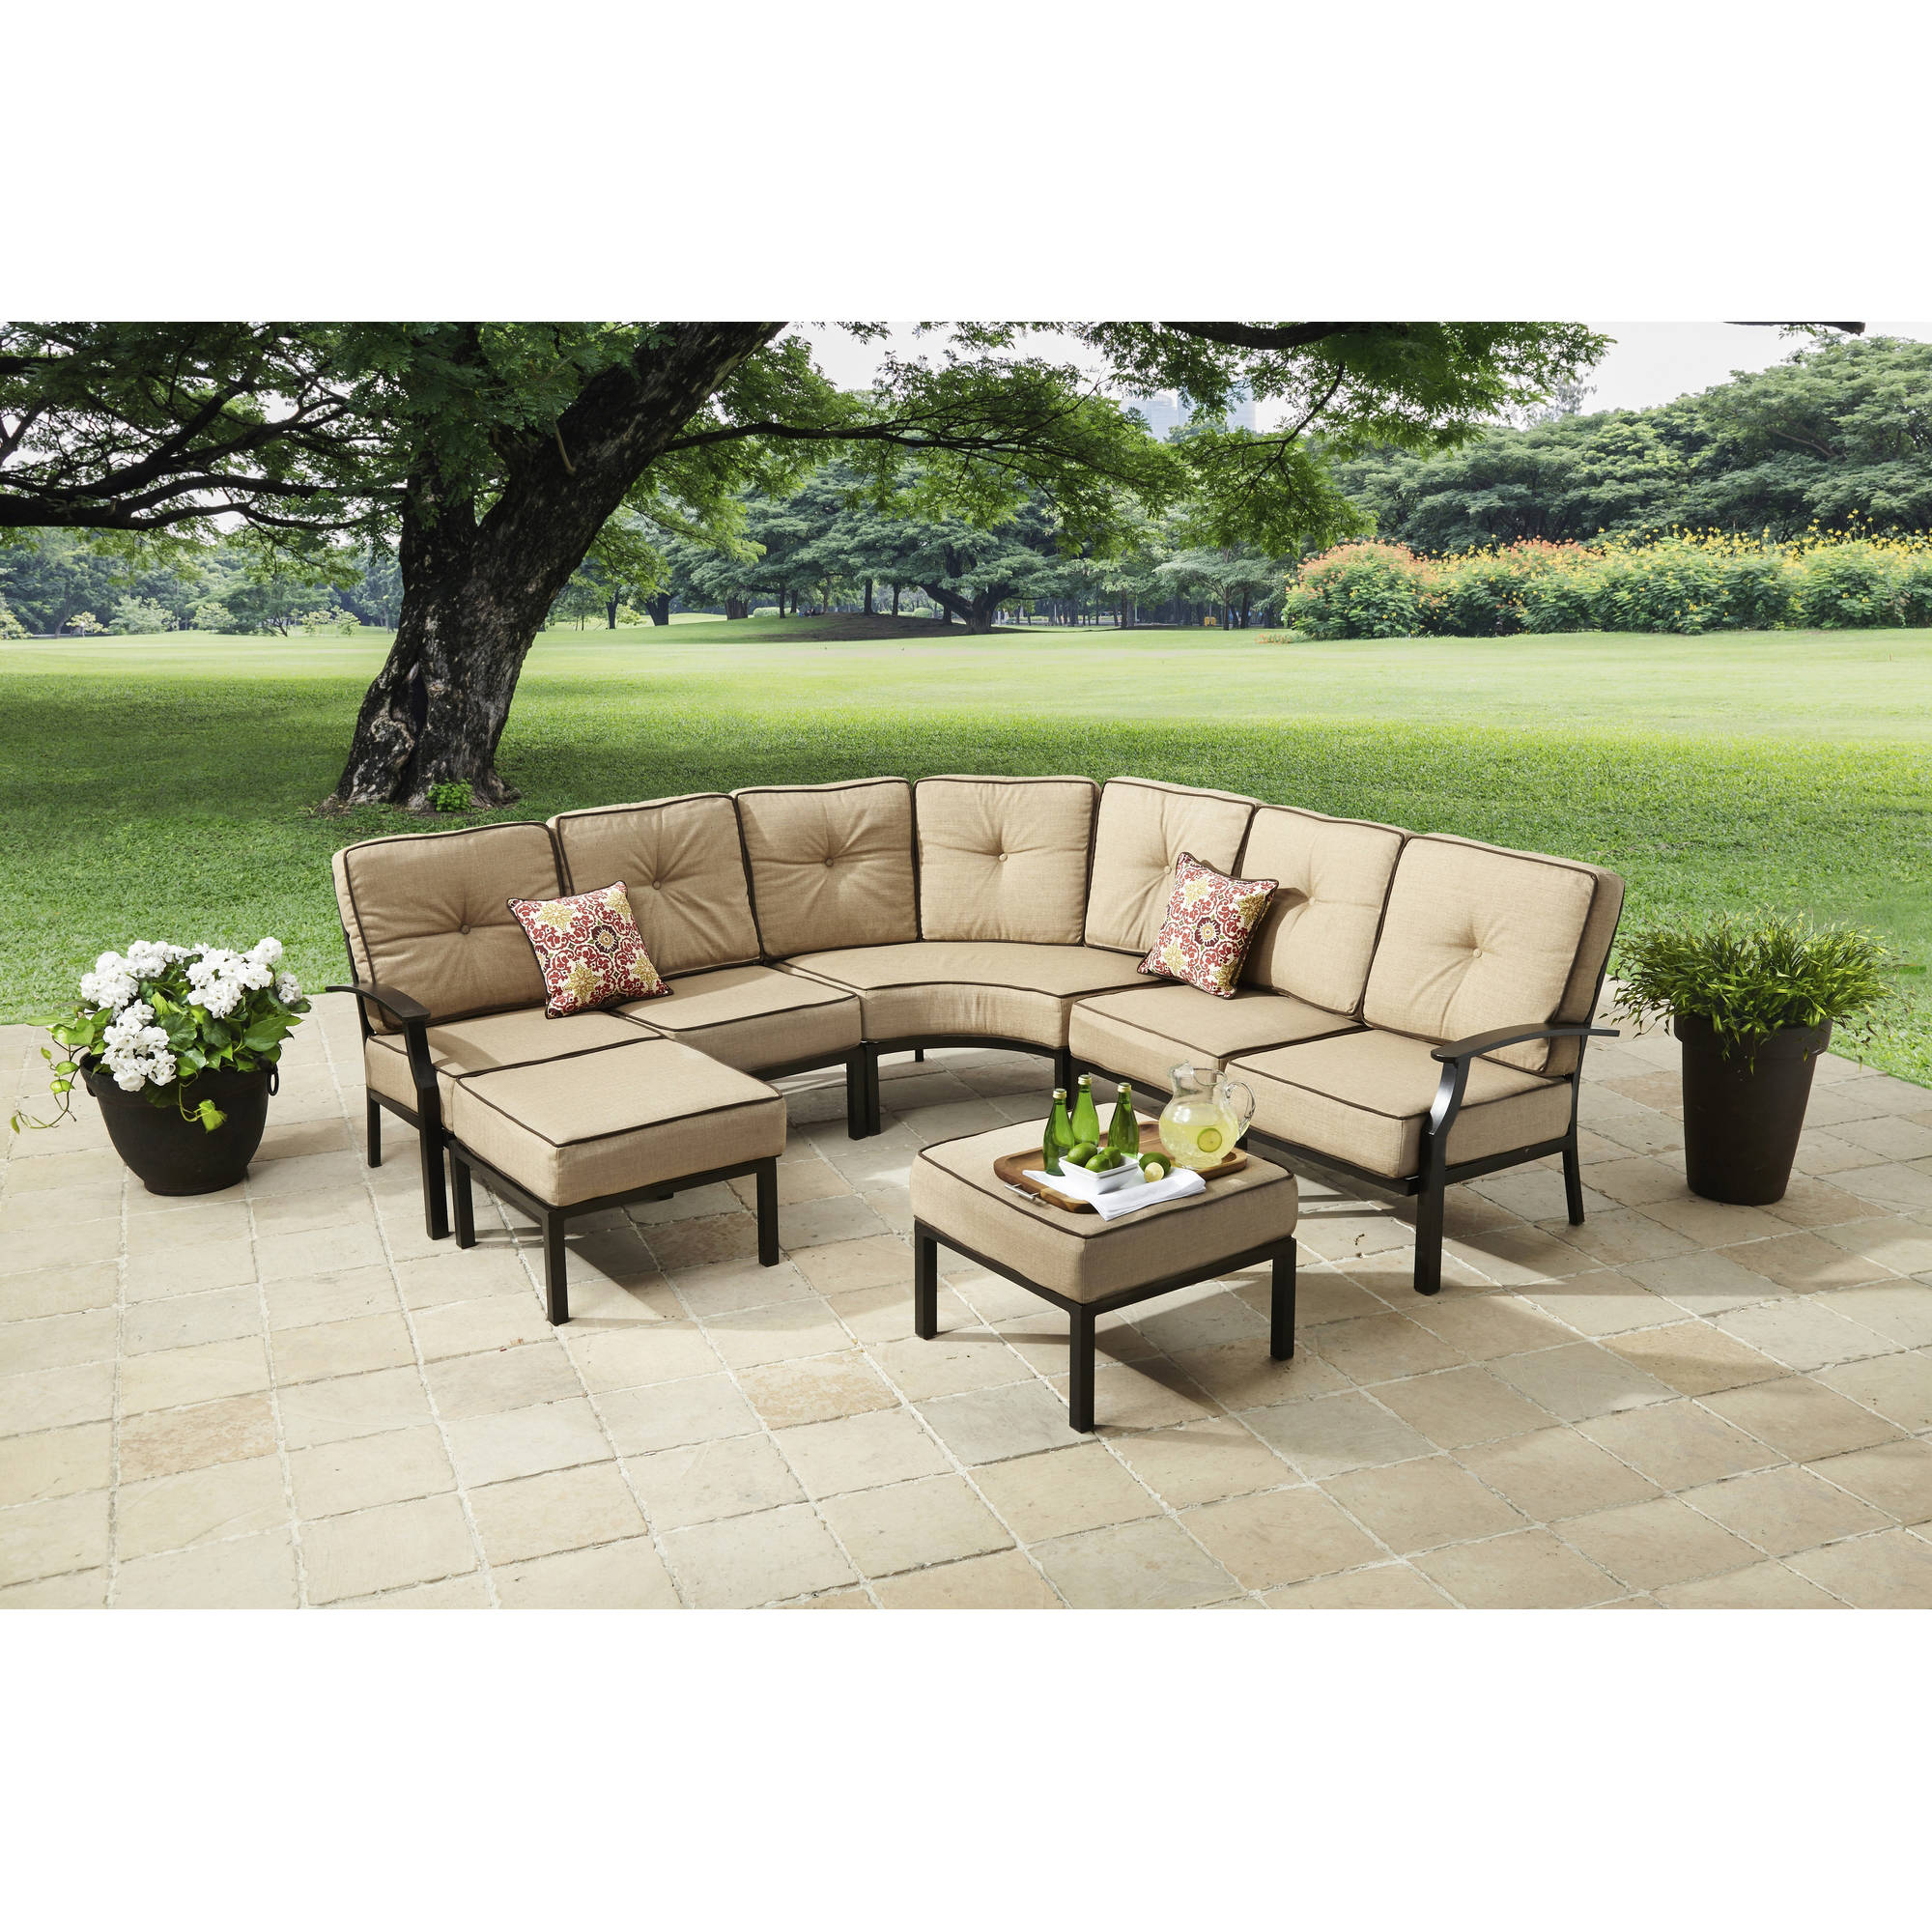 Better homes and gardens carter hills 7 piece outdoor Better homes and gardens gardener